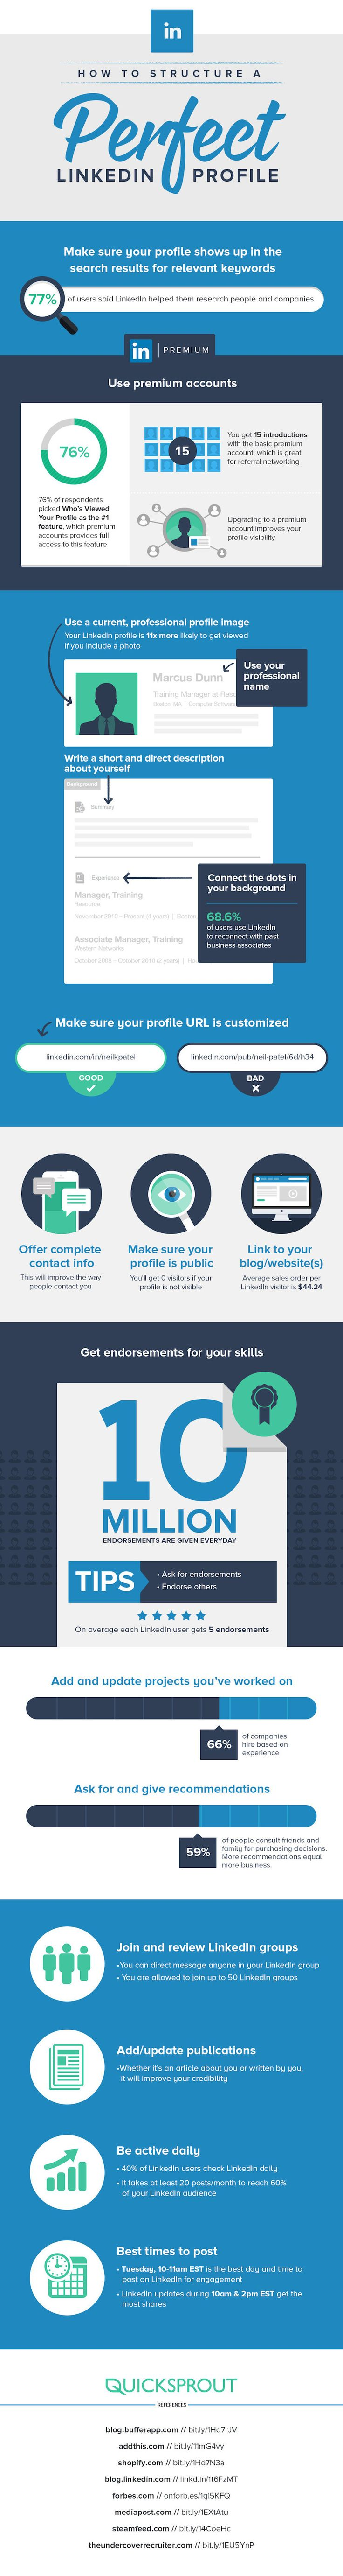 Download Infographics 1 - Job Support 4 You